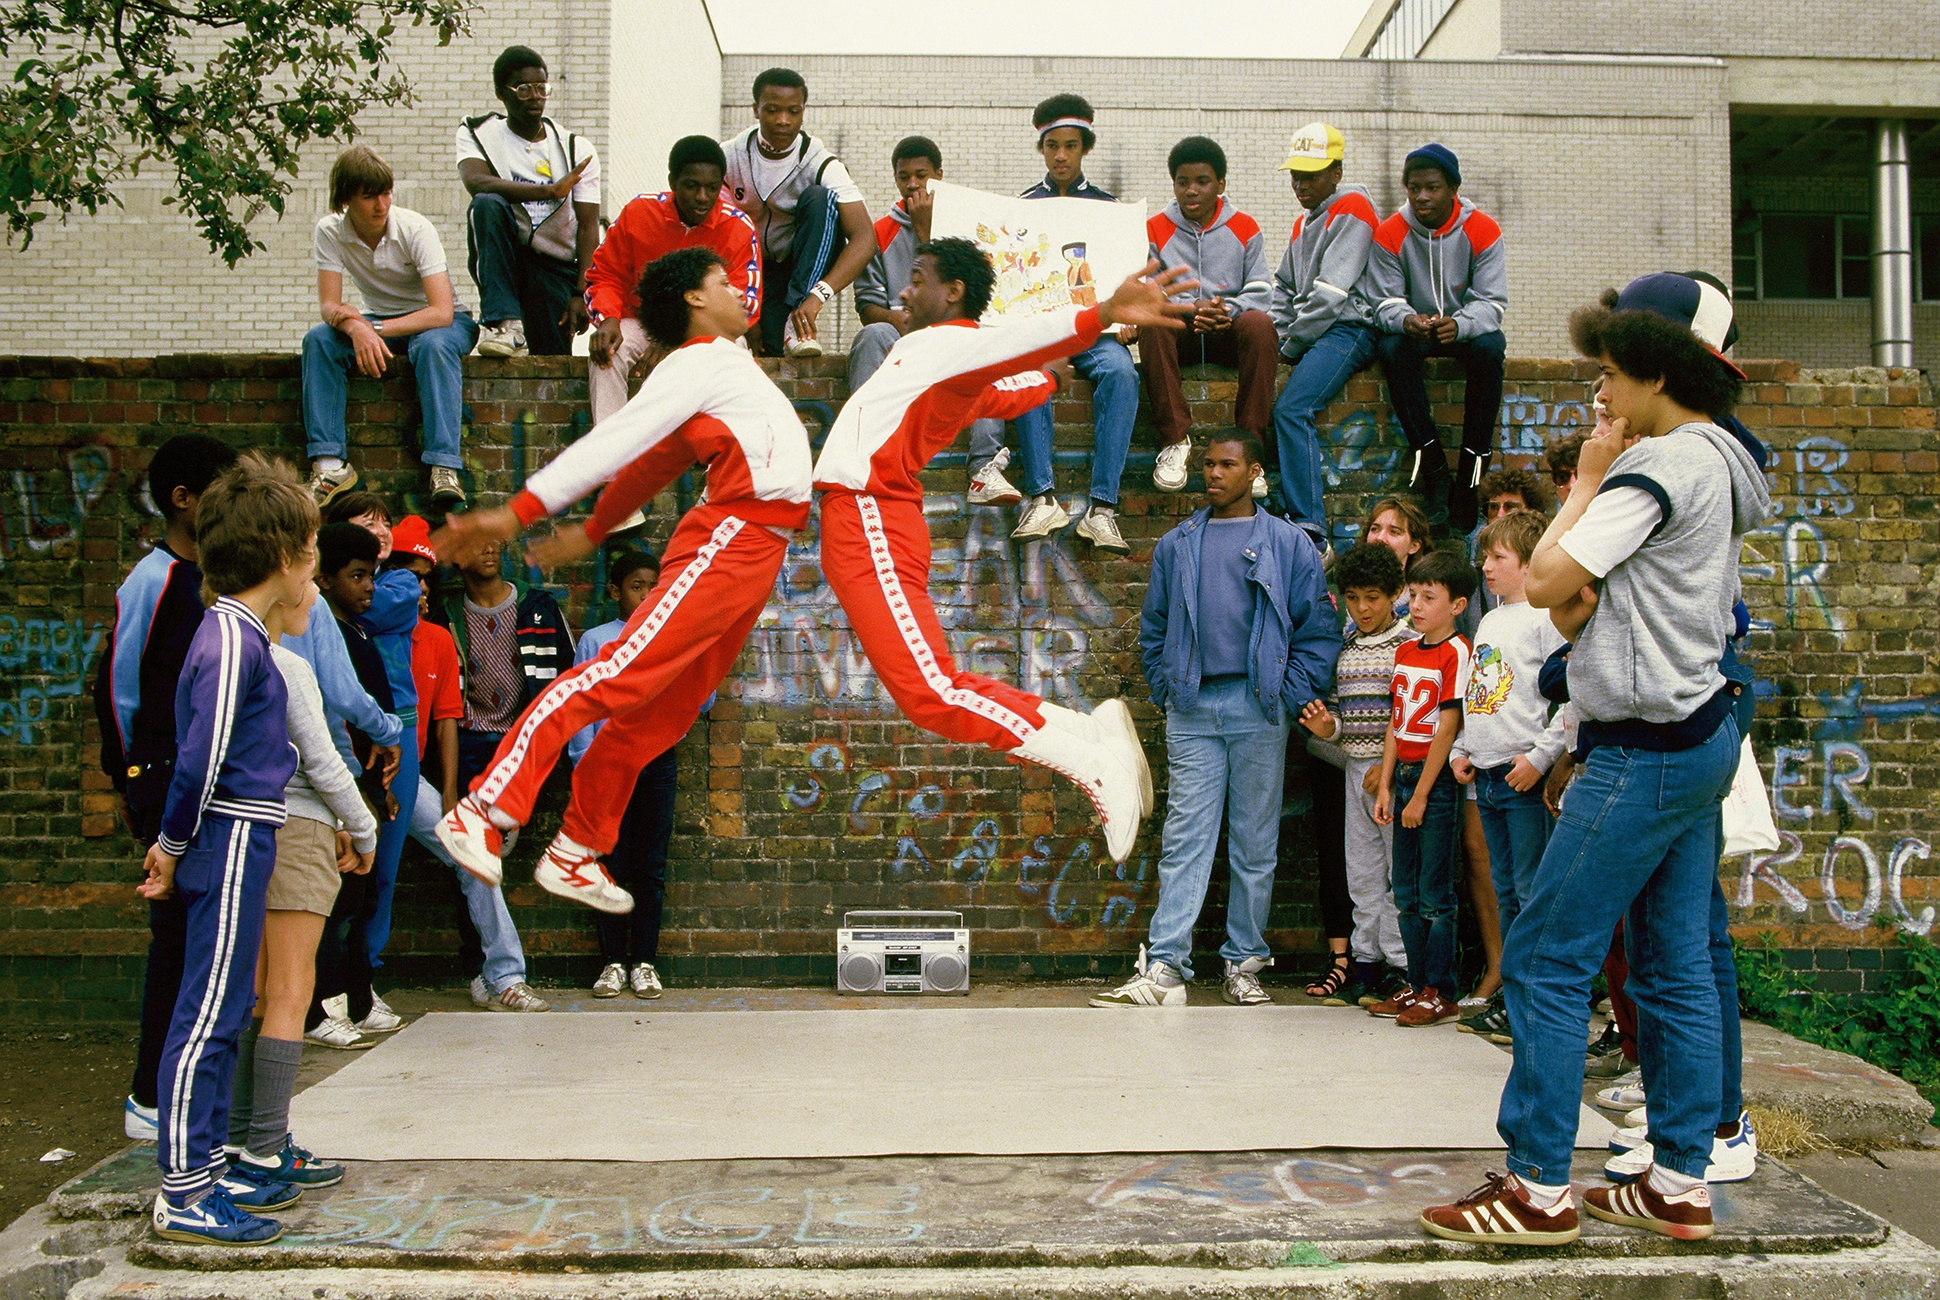 Two breakdancers in red Kappa tracksuits jump up during a breakdancing performance, London, 1983 by Clare Muller